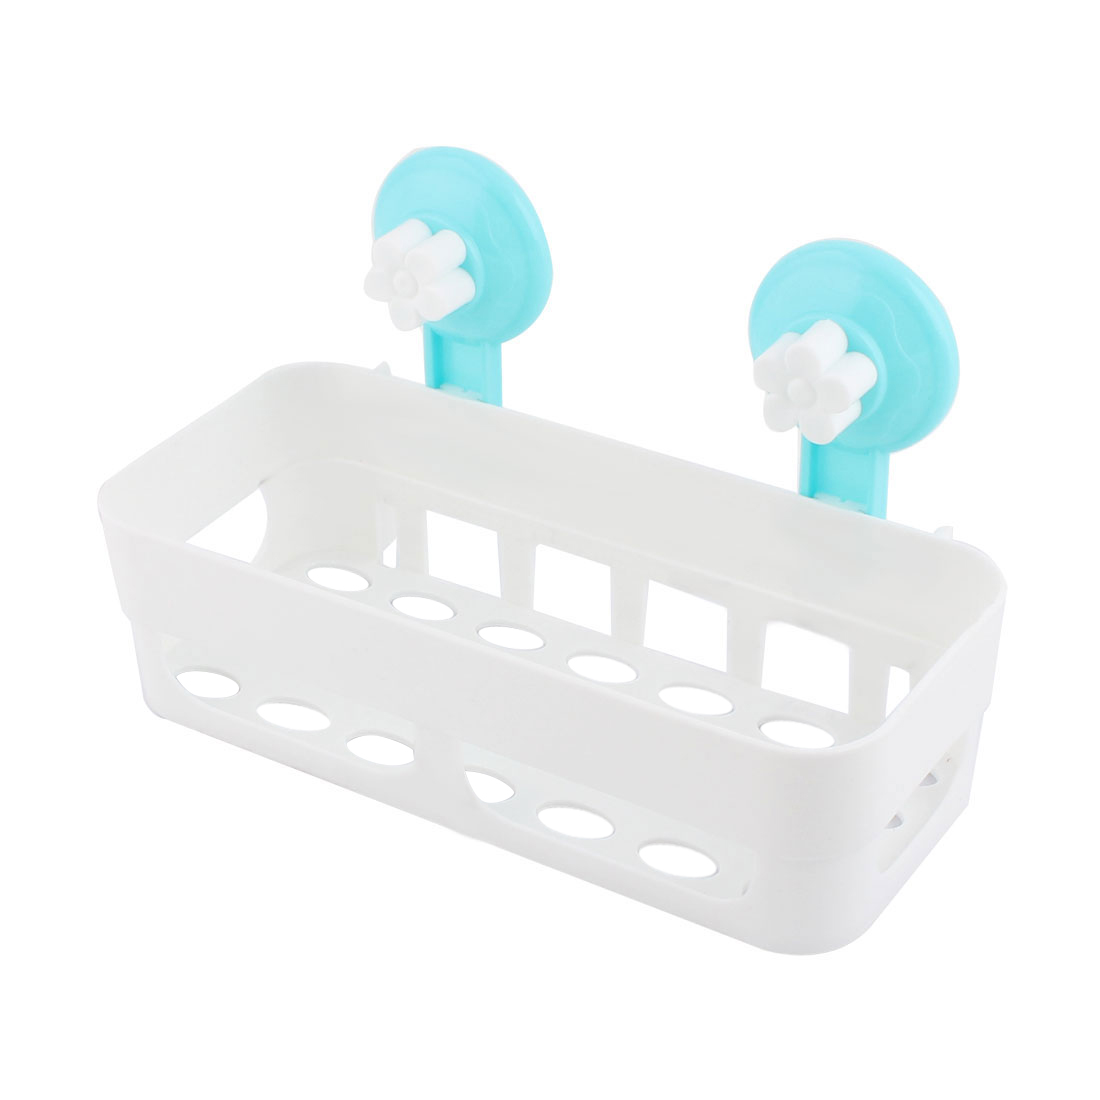 Bathroom Kitchen Rectangle Plastic Commodity Organize Suction Cup Shelf Holder White